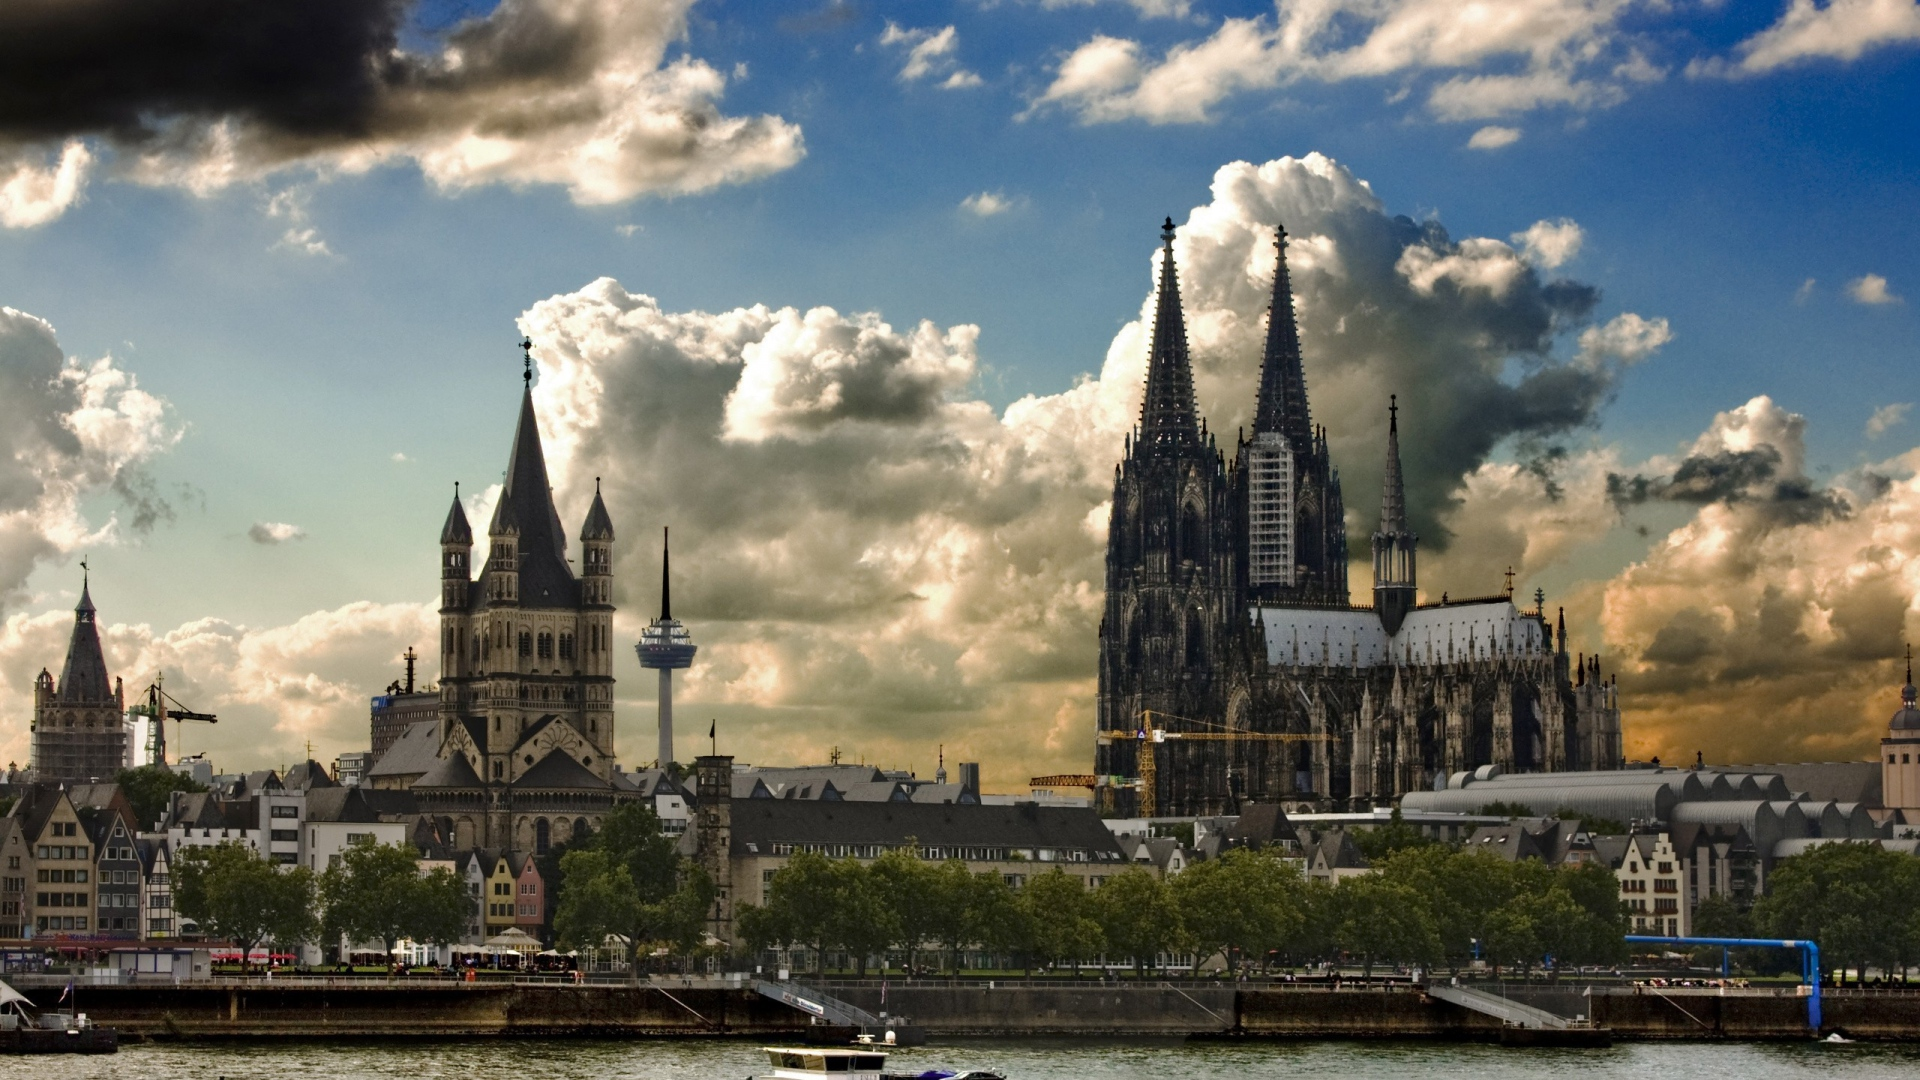 download wallpaper 1920x1080 germany cologne building